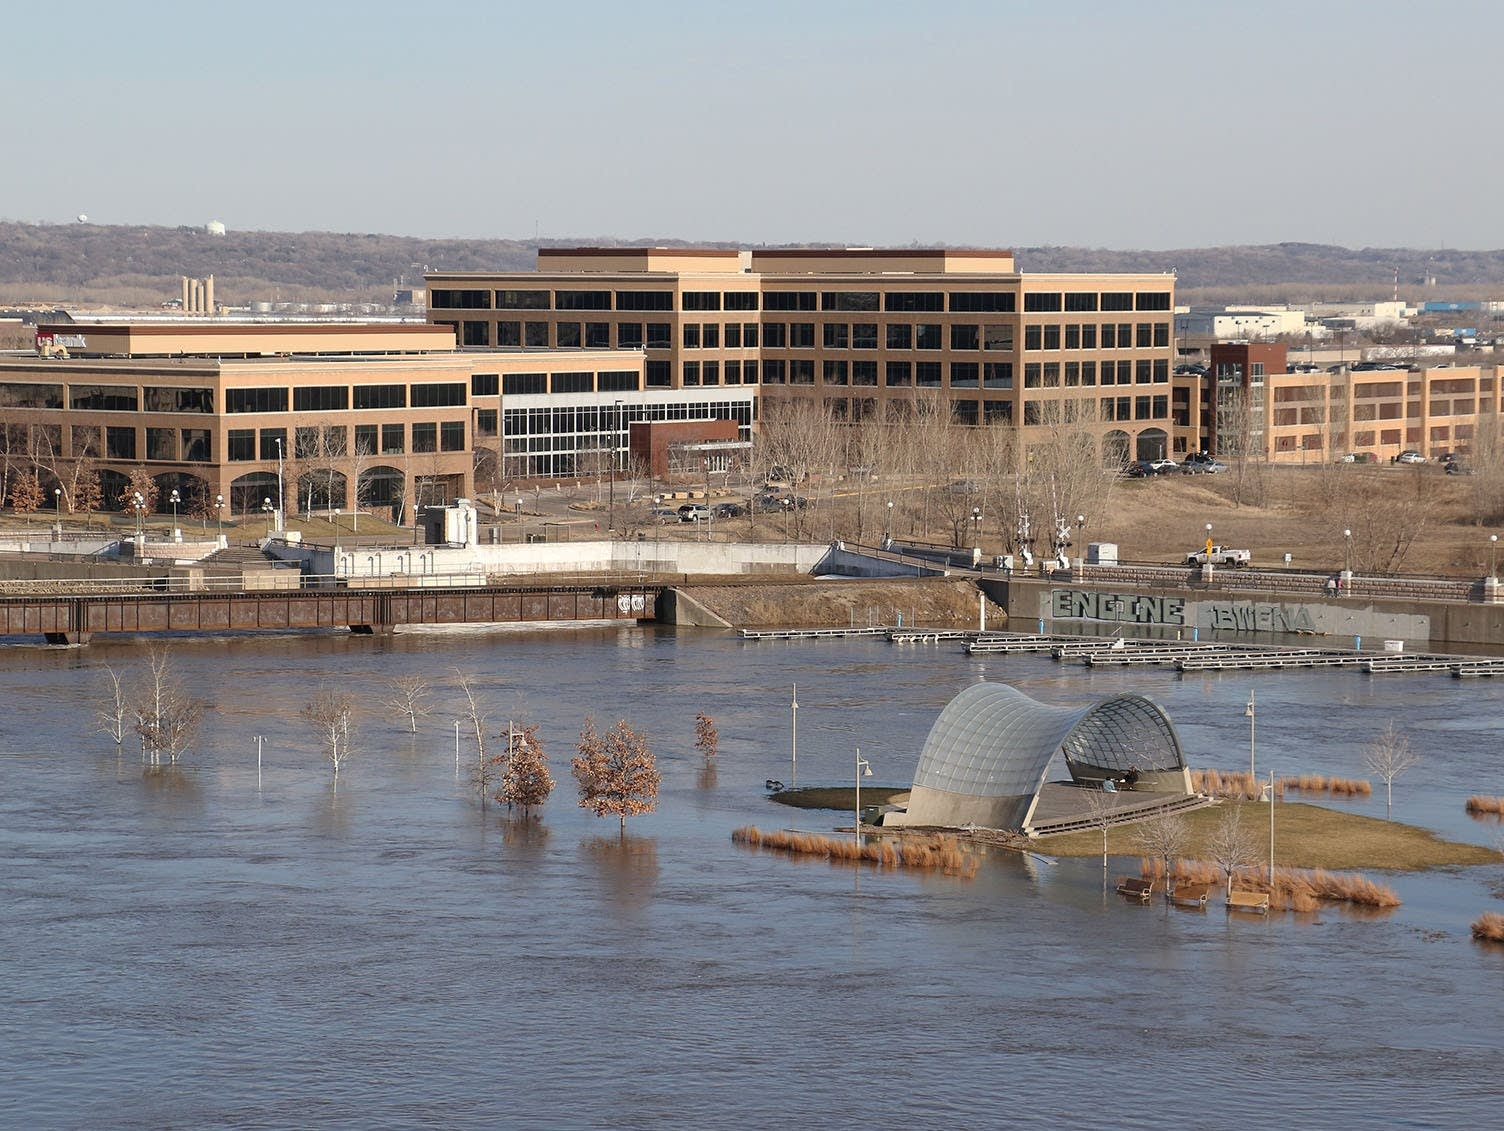 Much of Raspberry Island is inundated by Mississippi River floodwaters